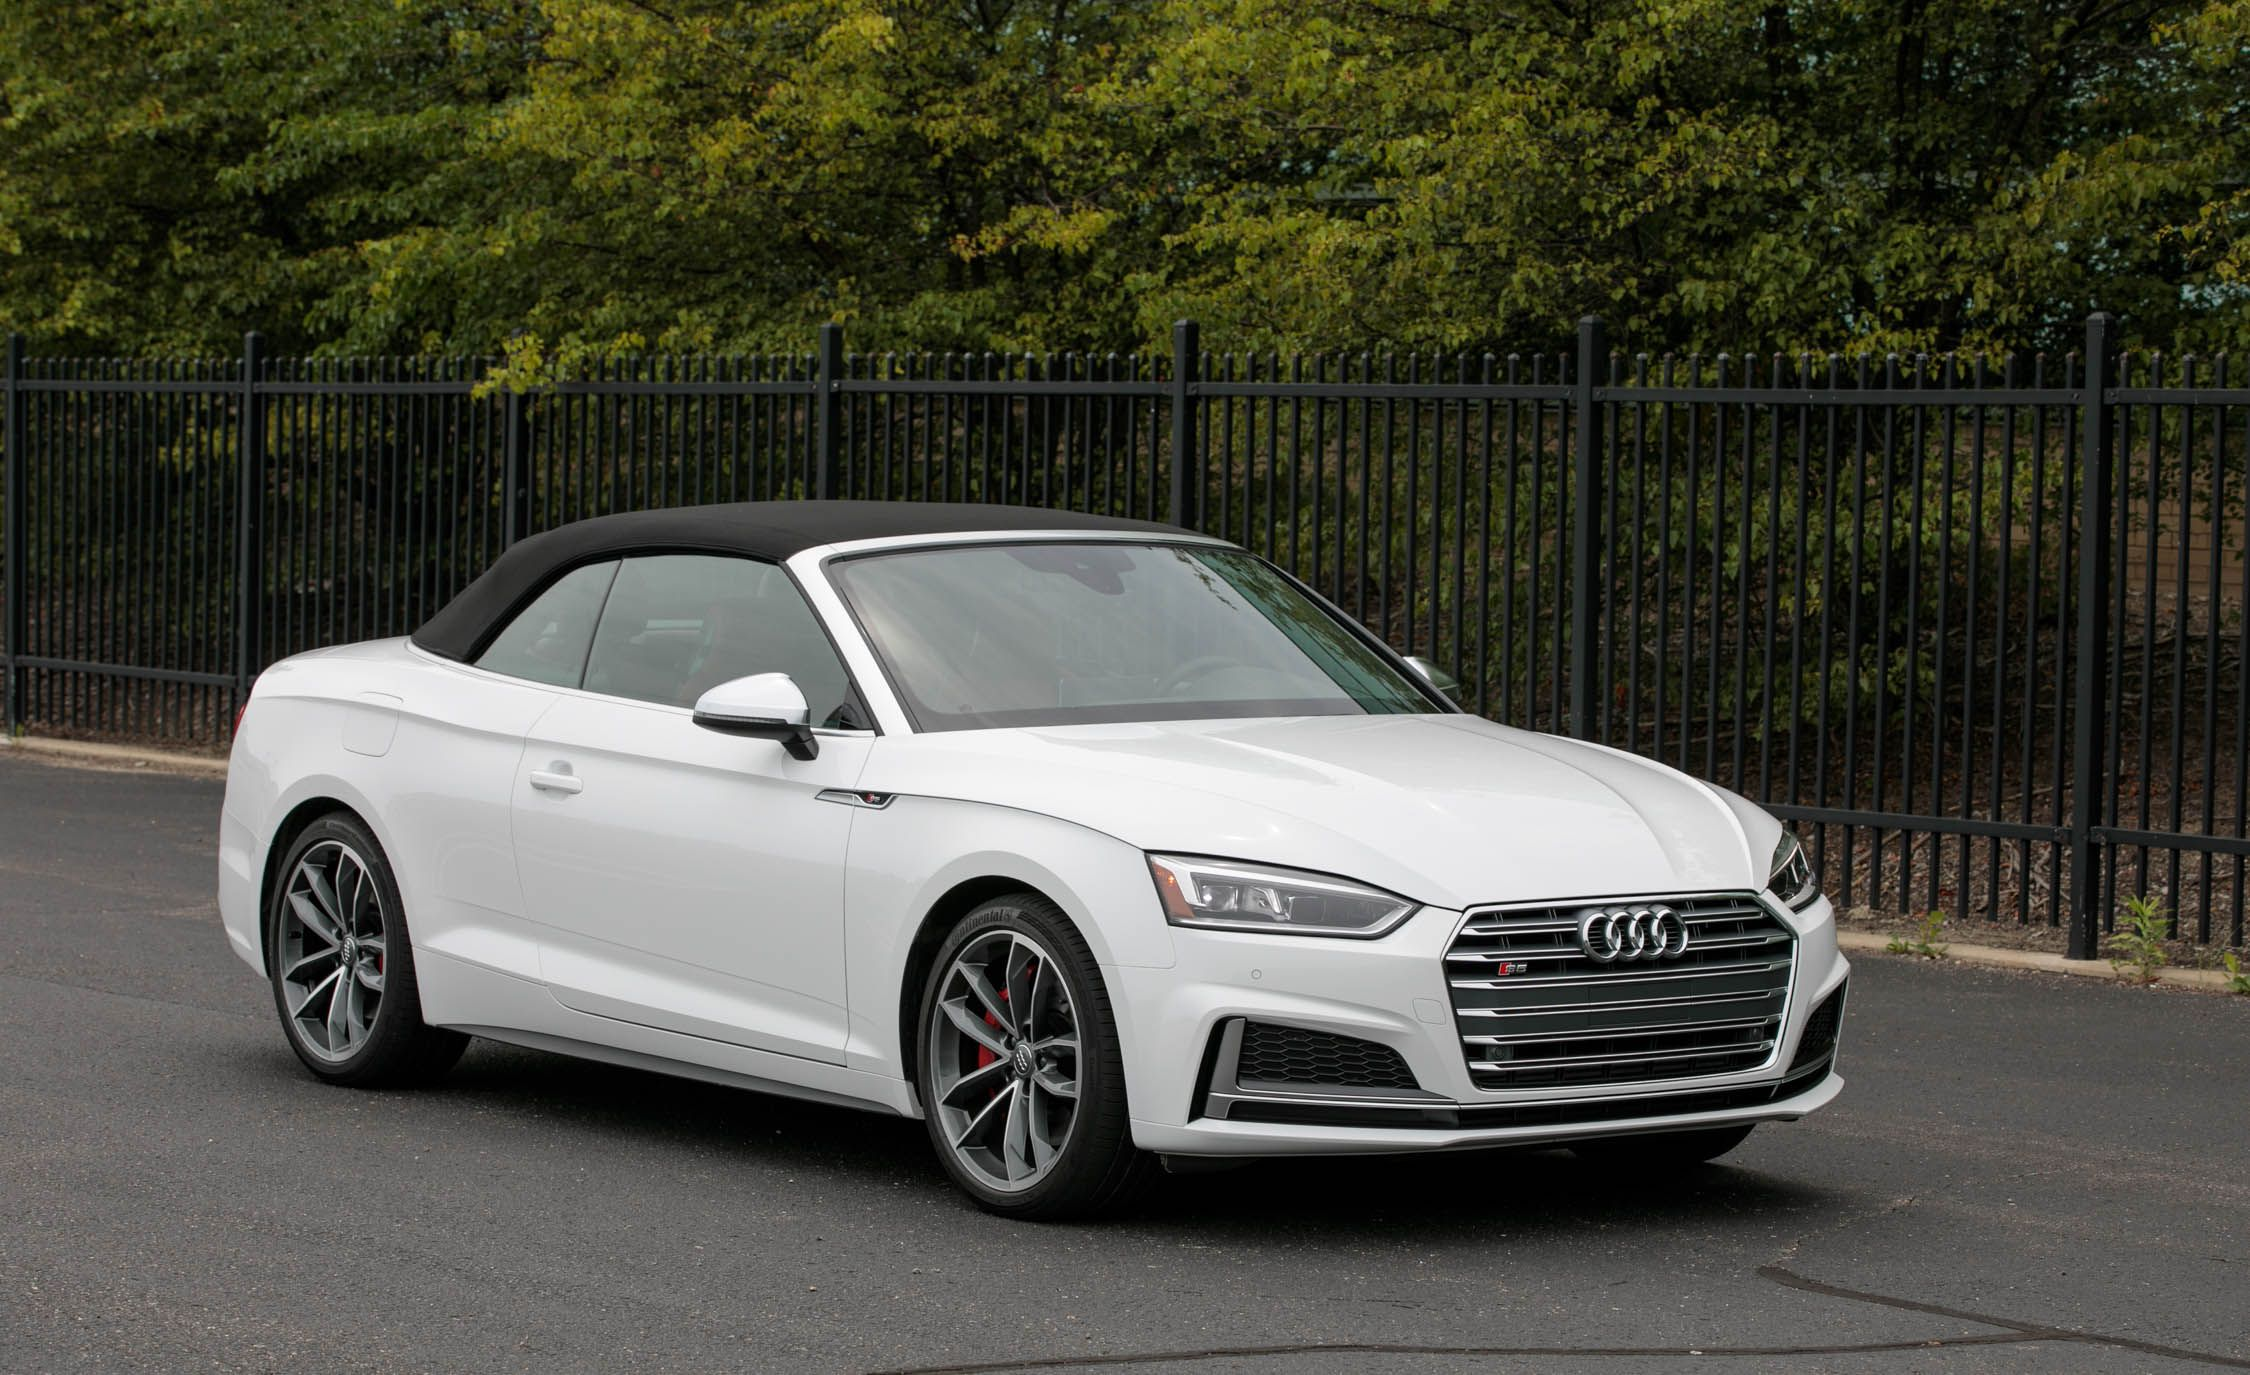 2019 Audi S5 Reviews Audi S5 Price Photos And Specs Car And Driver